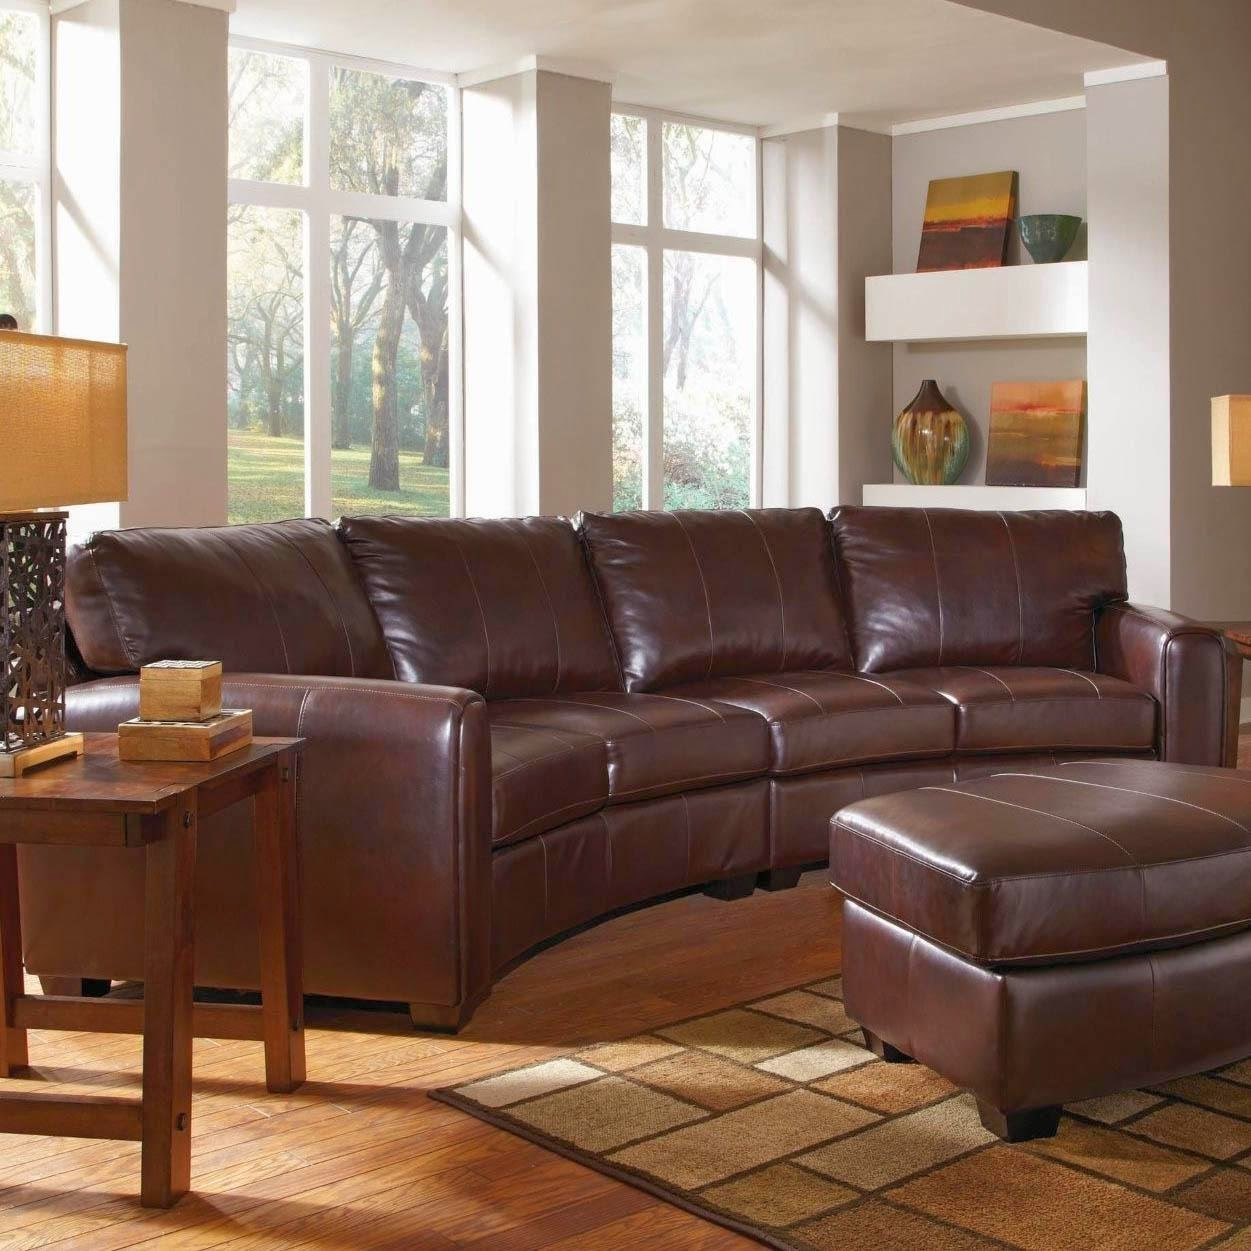 Curved Sofa Sectional Leather: Curved Sofa: Curved Leather Sofa